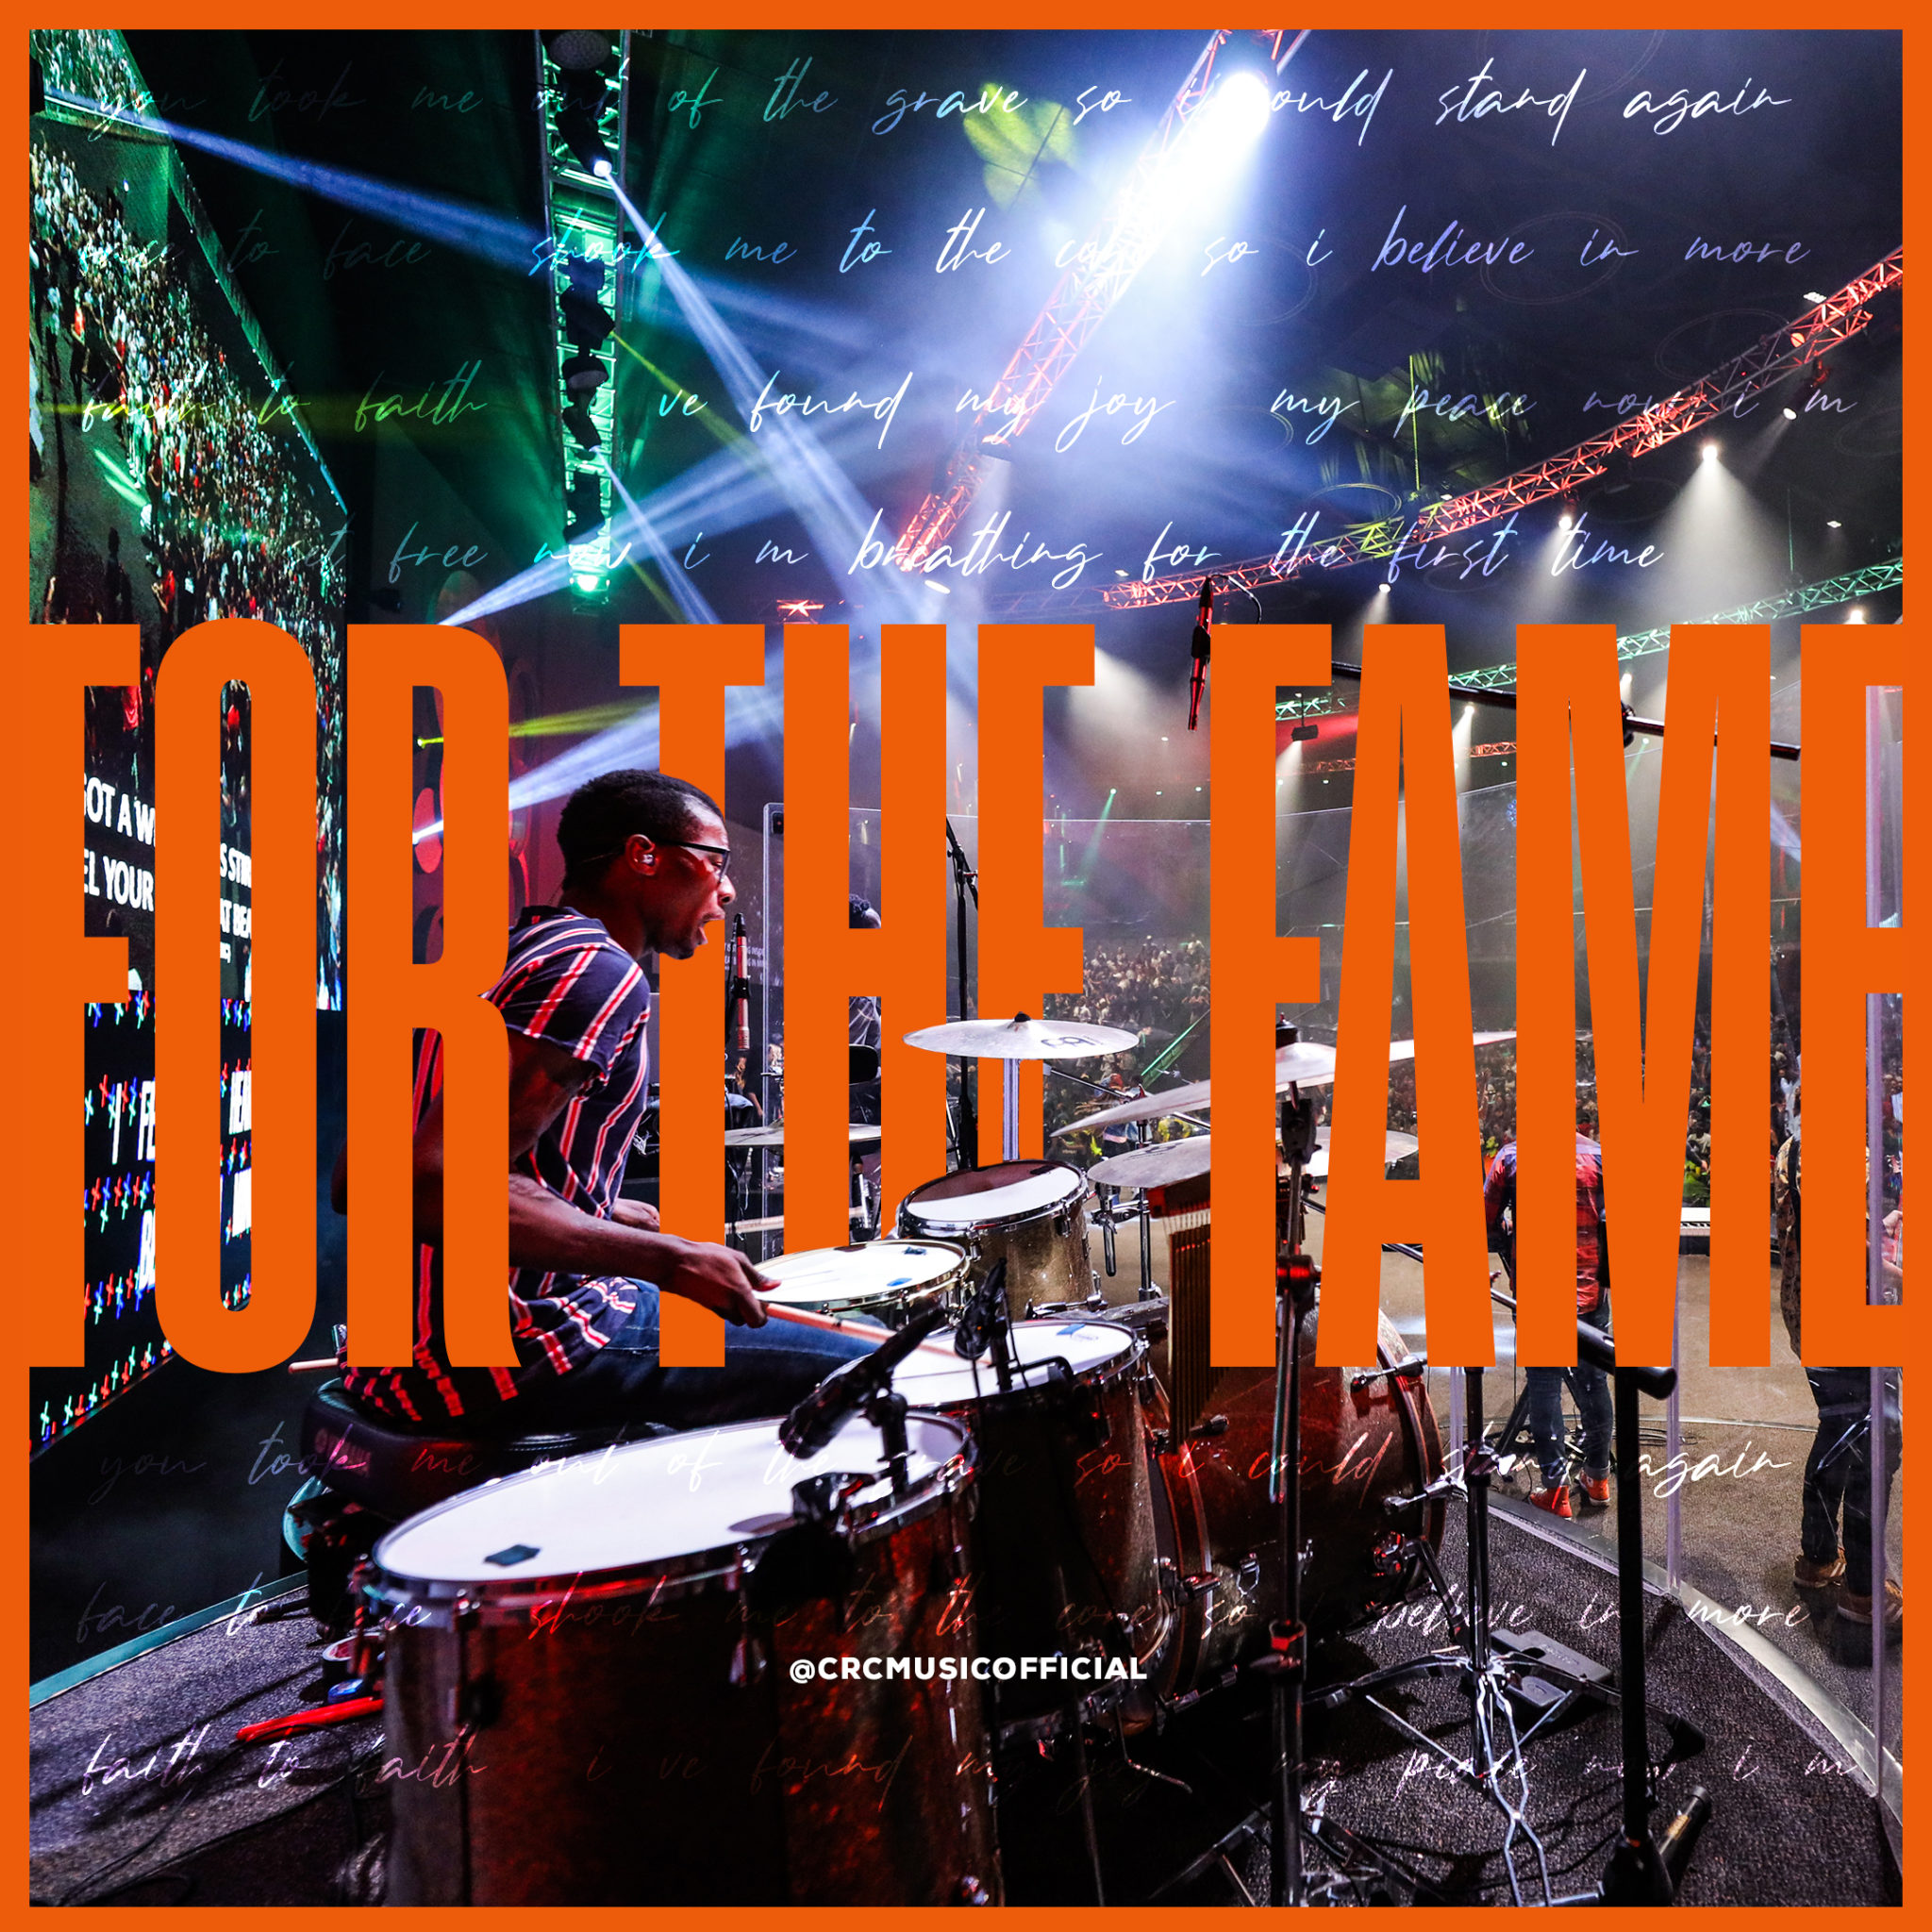 For The Fame